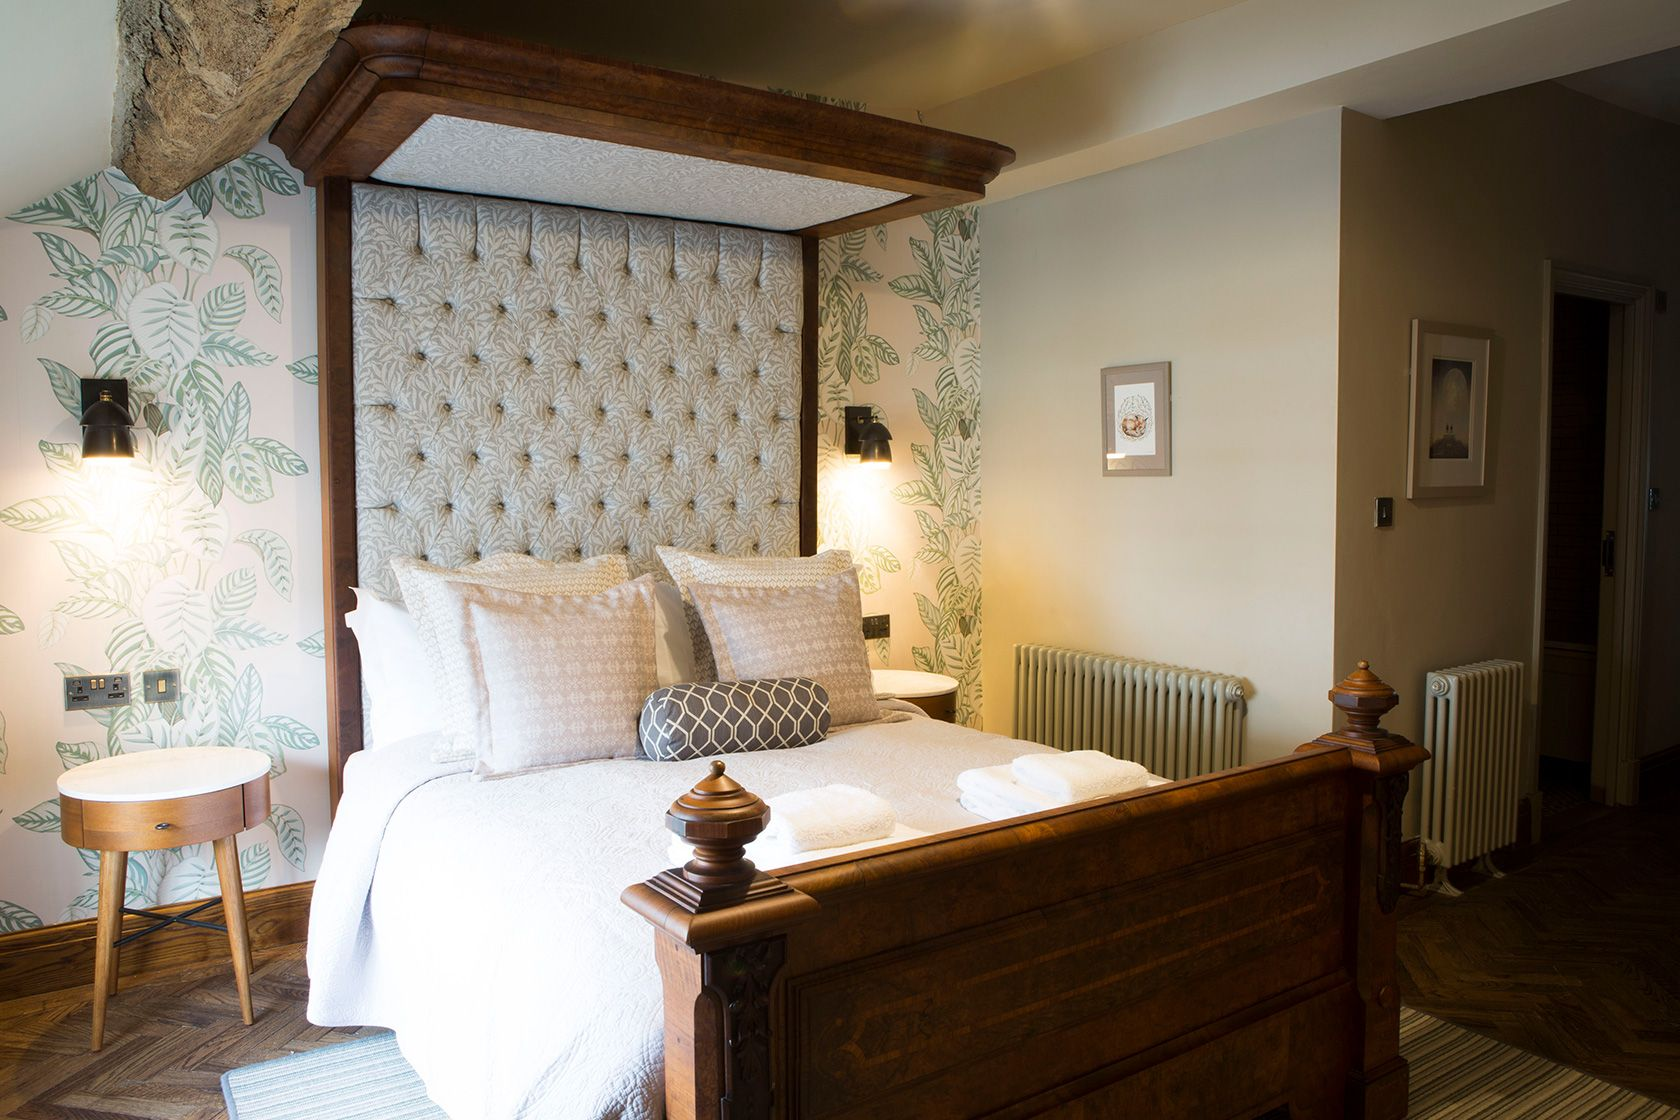 A premium hotel bedroom at the Legh Arms close to Alderley Edge